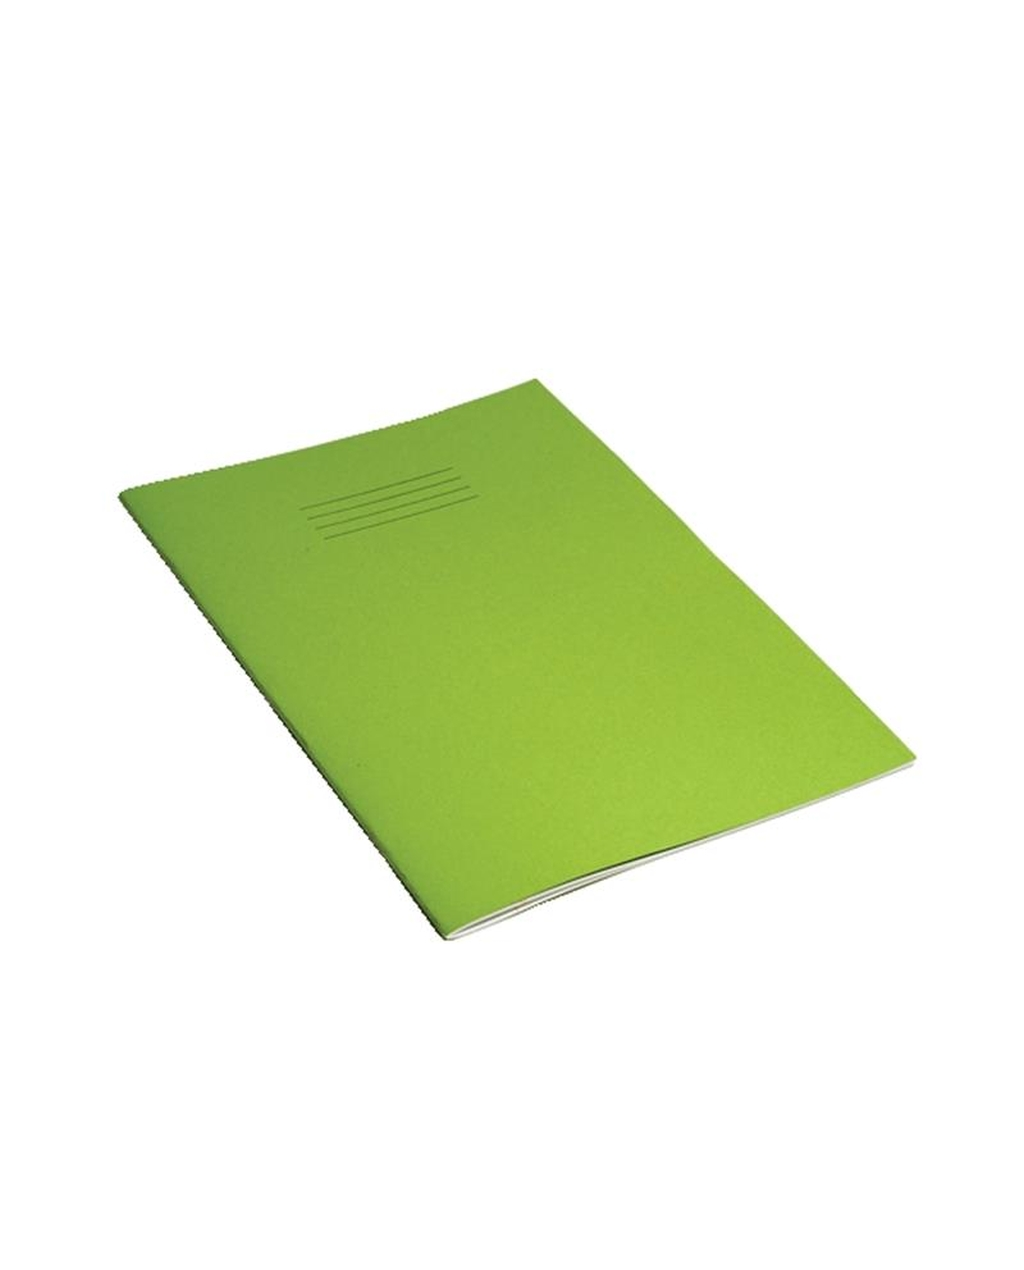 Exercise Book A4 (297 x 210mm) Light Green Cover 8mm Ruled & Margin 80 Pages